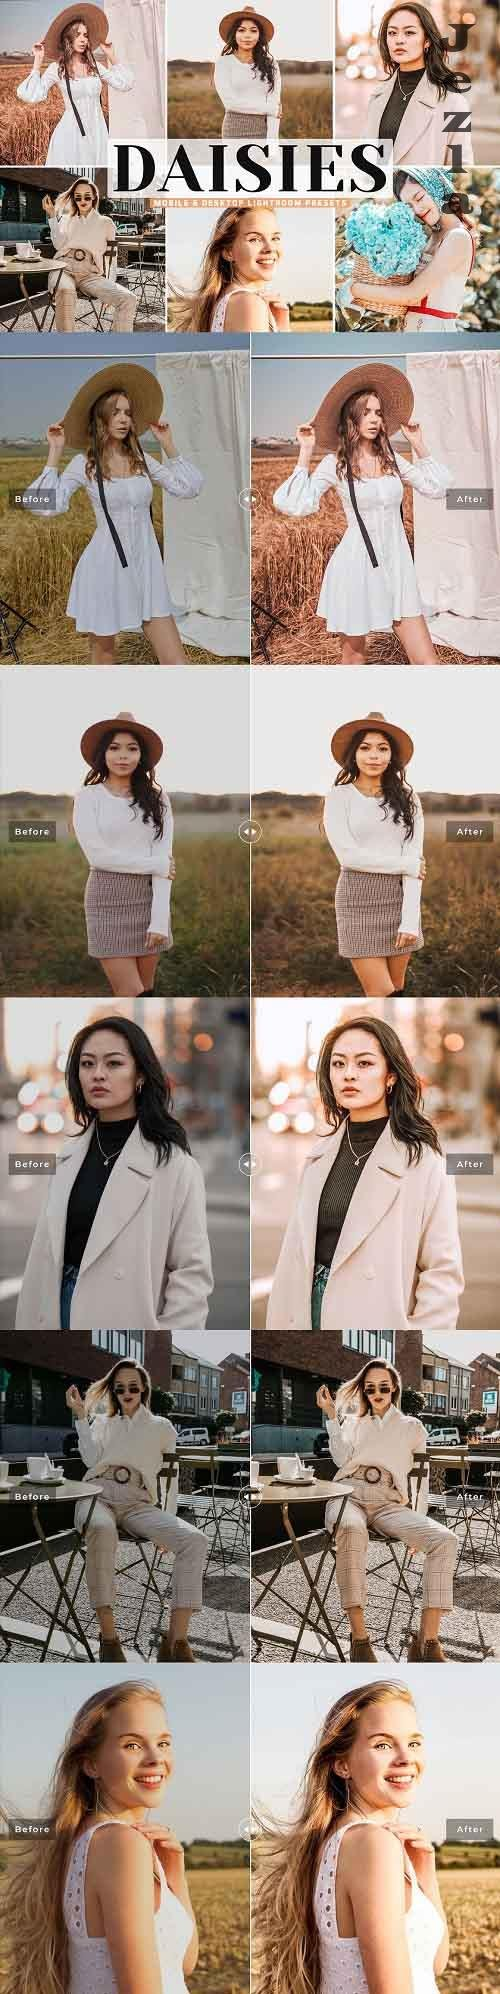 Daisies Pro Lightroom Presets - 5534493 - Mobile & Desktop